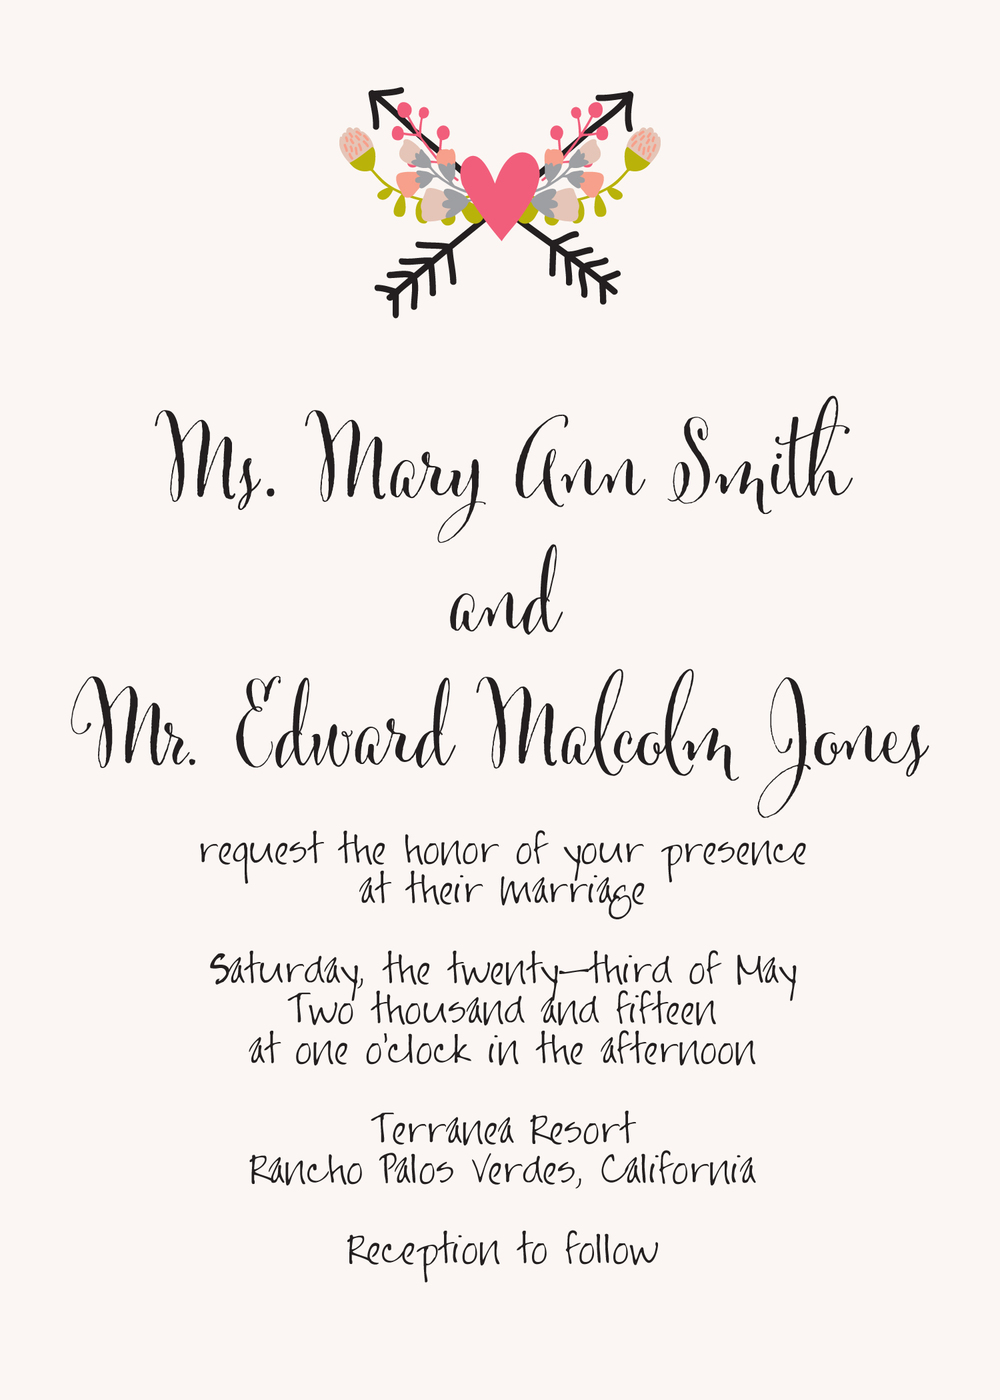 Couple hosting wedding wording. Using Cantoni Pro font for the names and Jayne Print Hand font for the information. Pretty Arrows design.